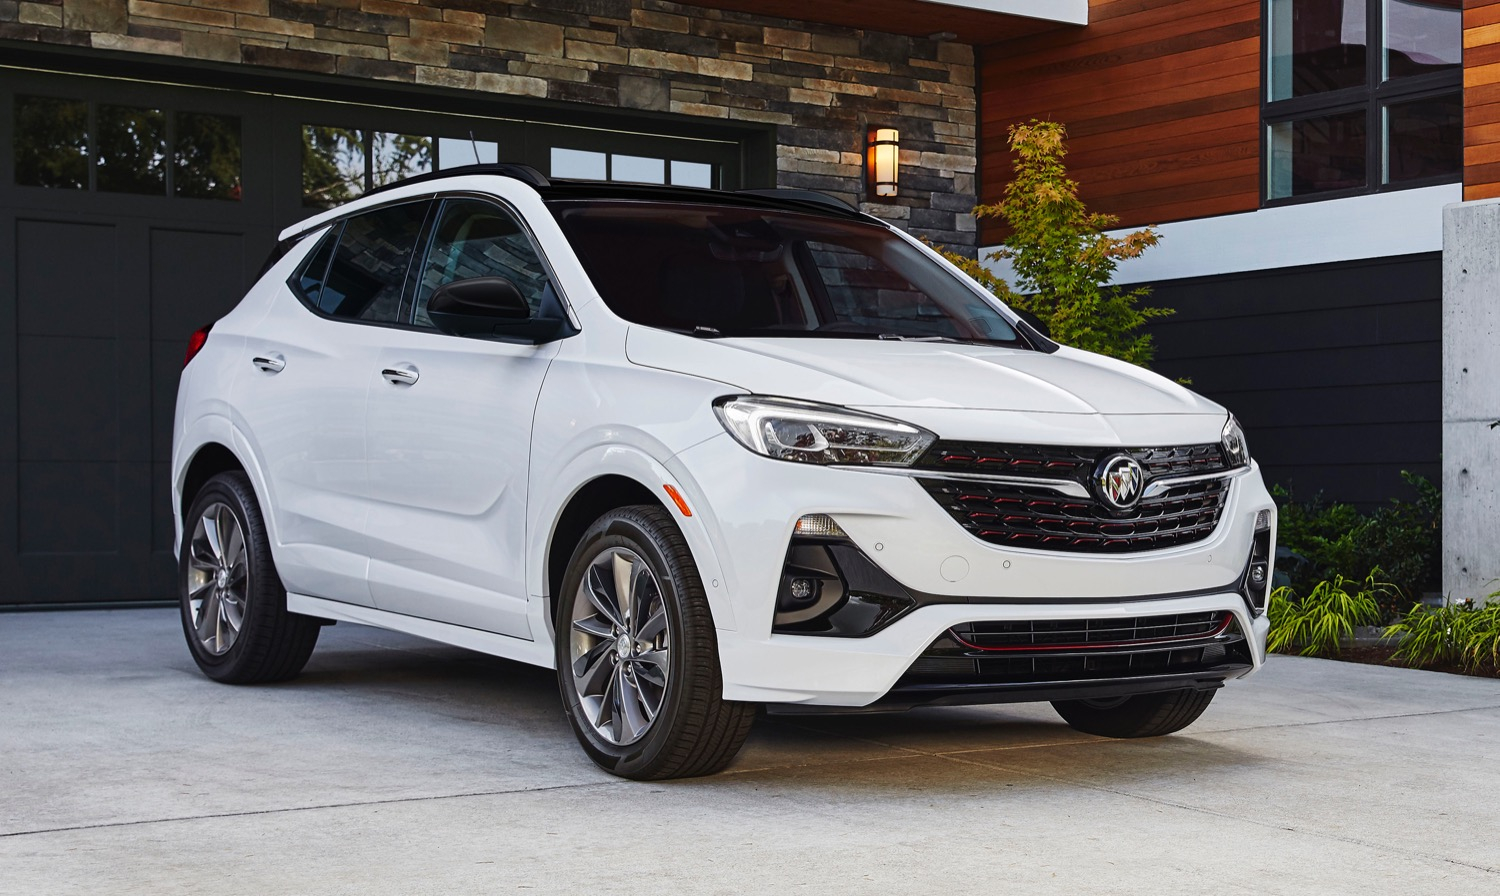 2020 Buick Encore Gx Fuel Economy Released | Gm Authority 2021 Buick Encore Gx Length, Price, Gas Mileage